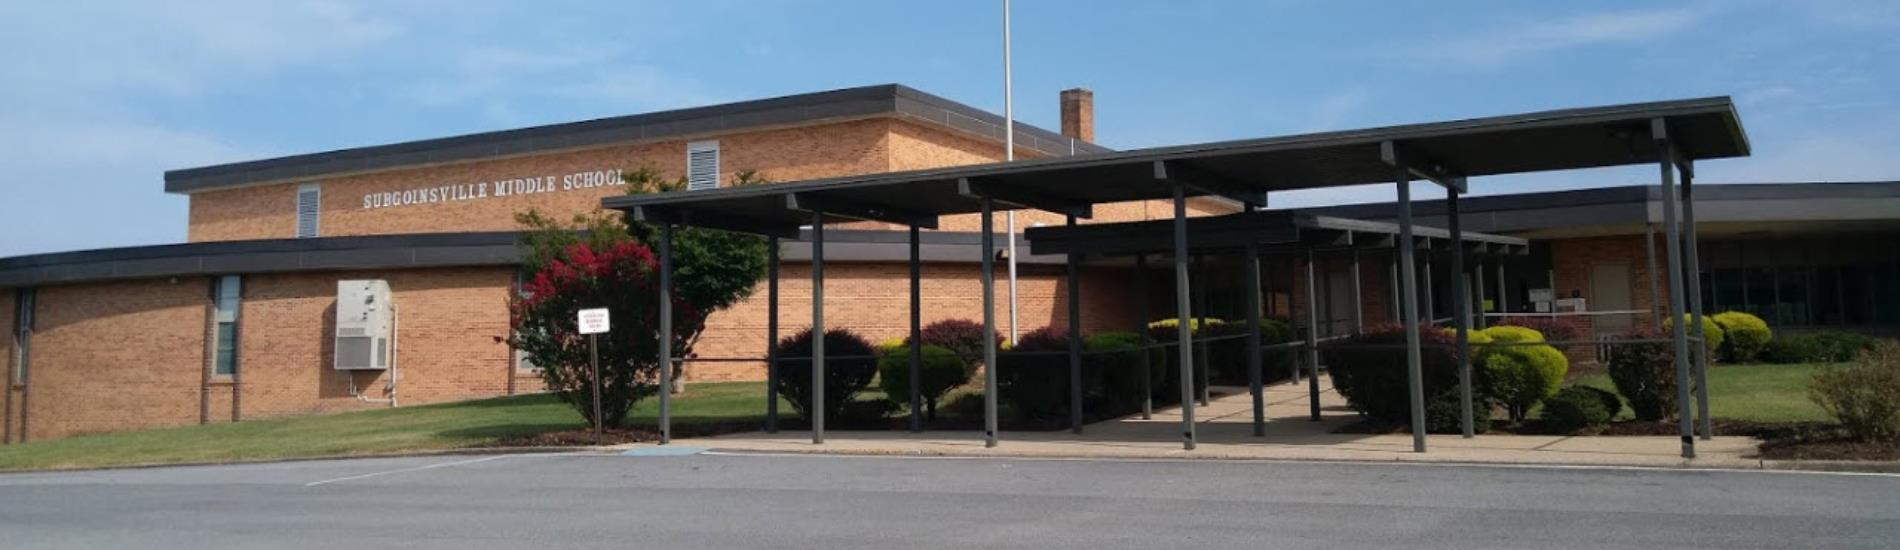 surgoinsville middle school building 3